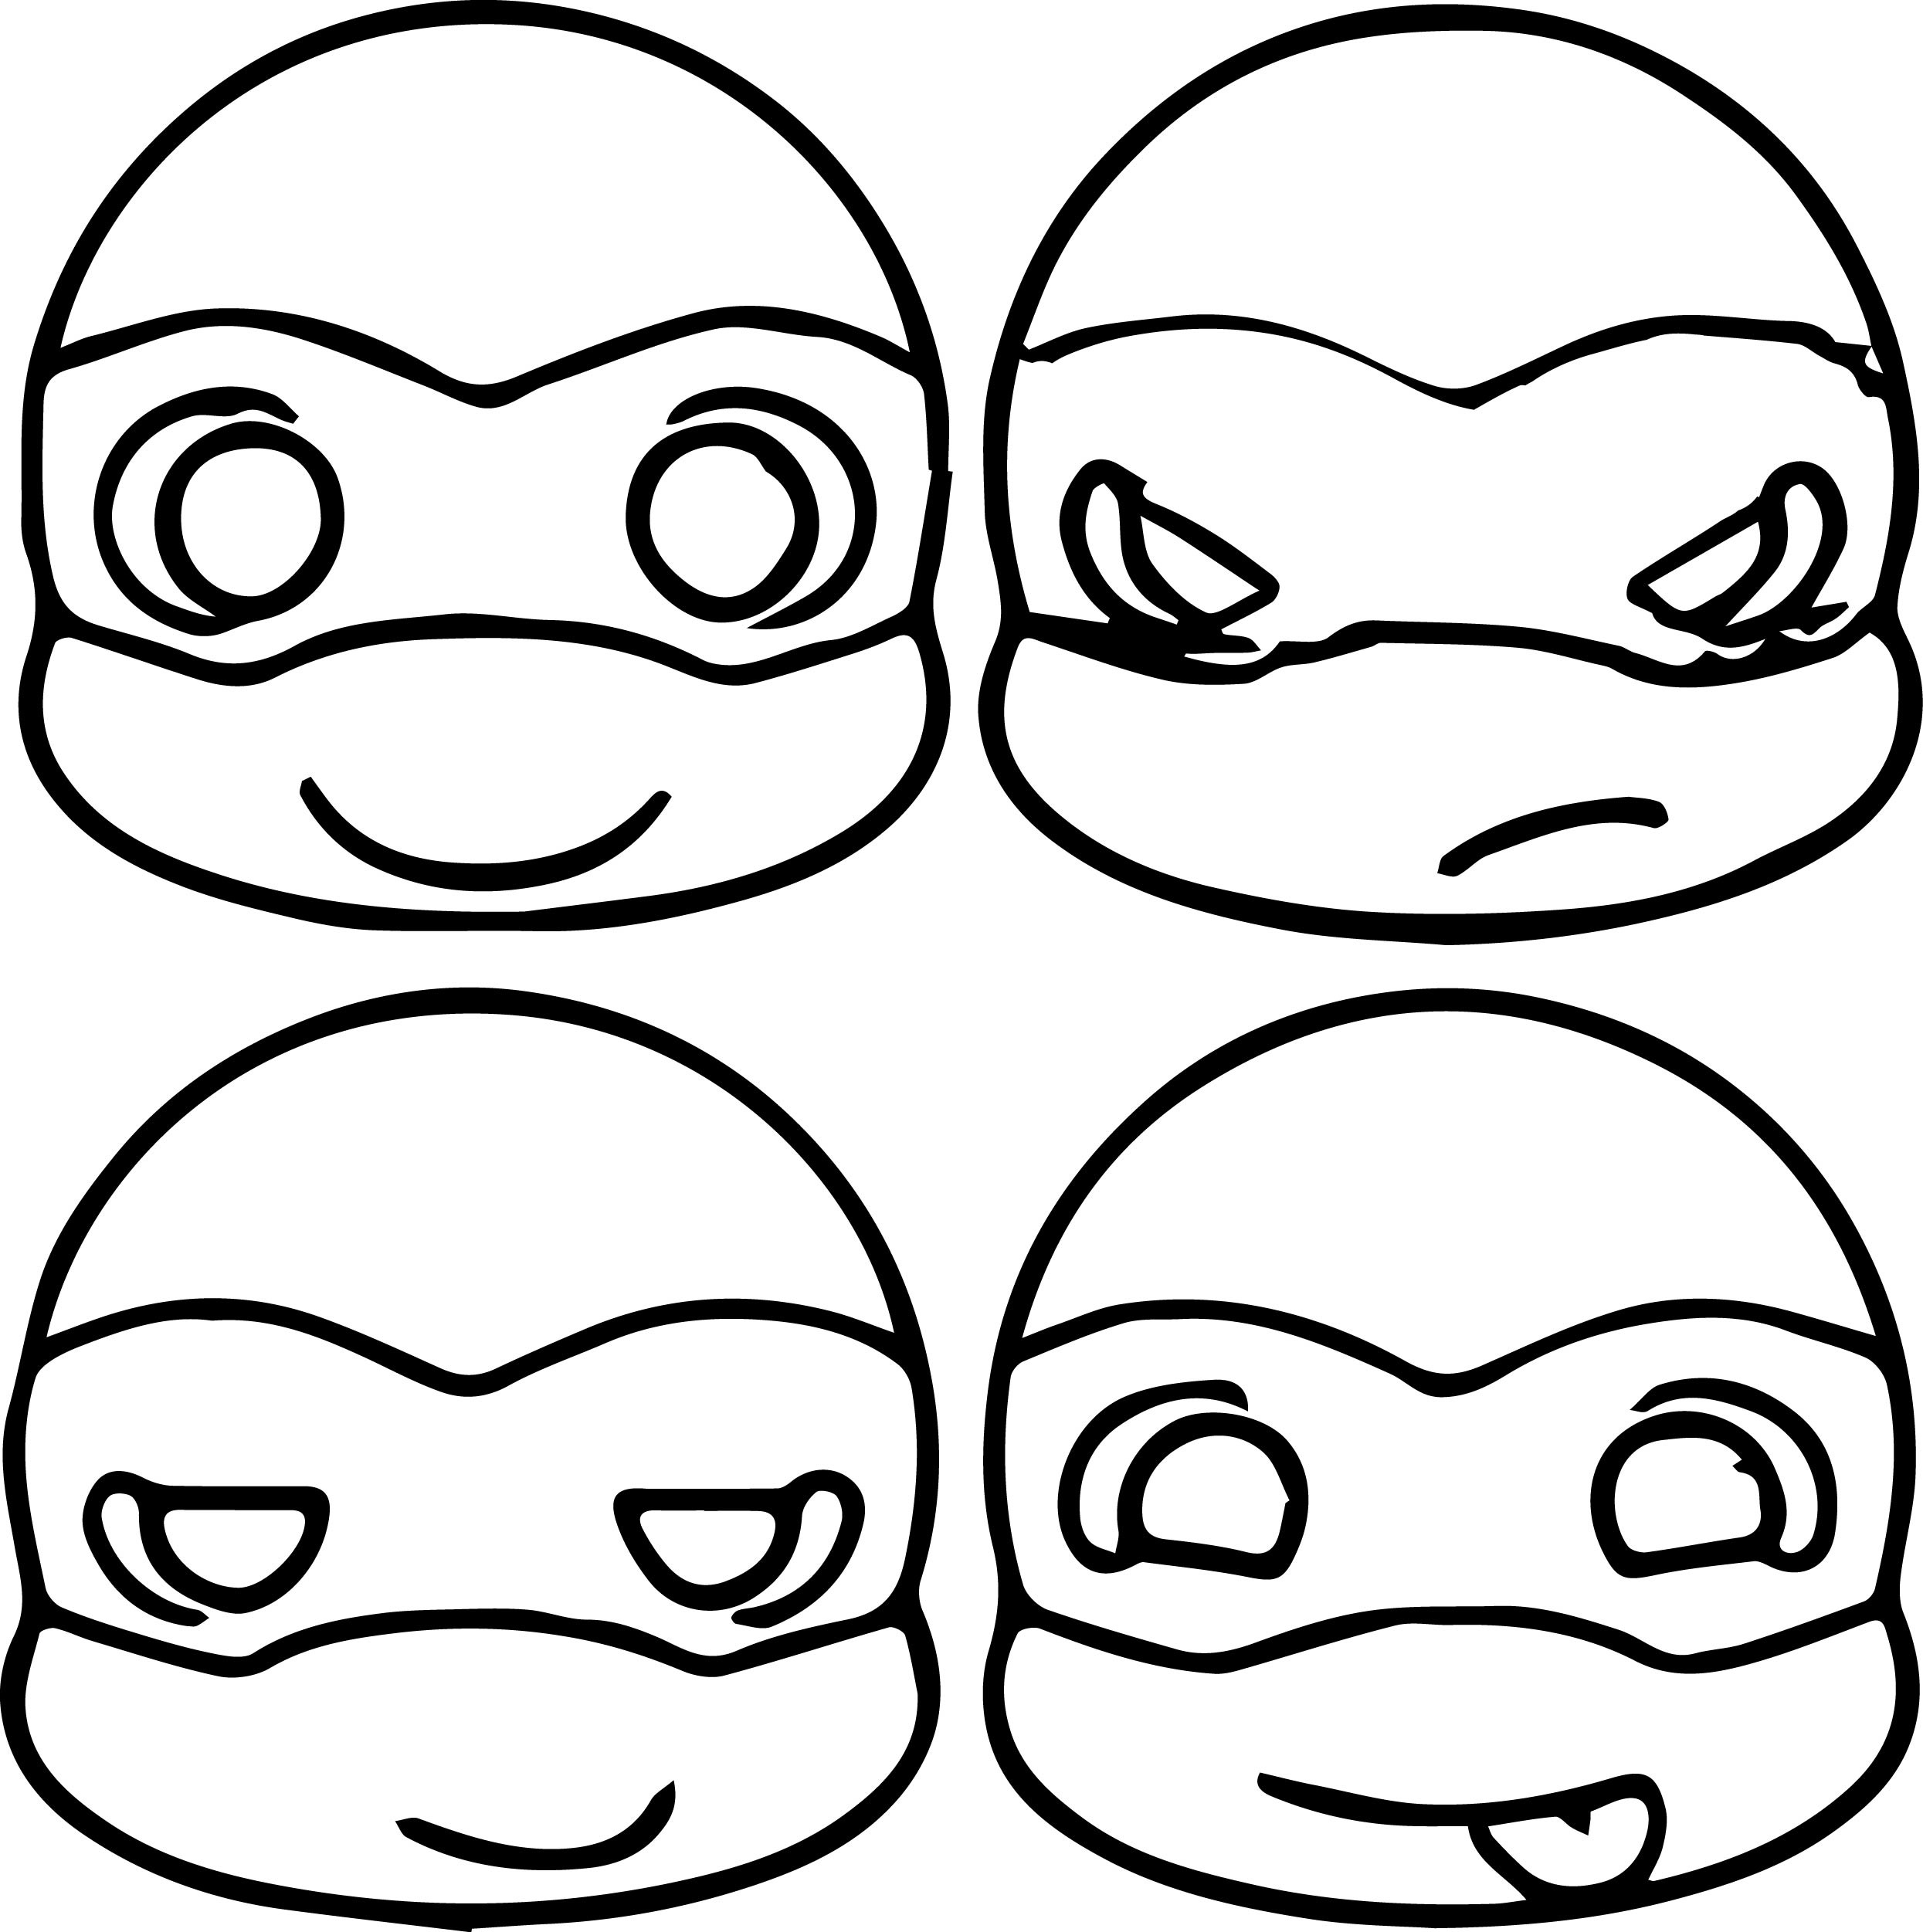 Cute Ninja Coloring Pages At Getdrawings Com Free For Personal Use